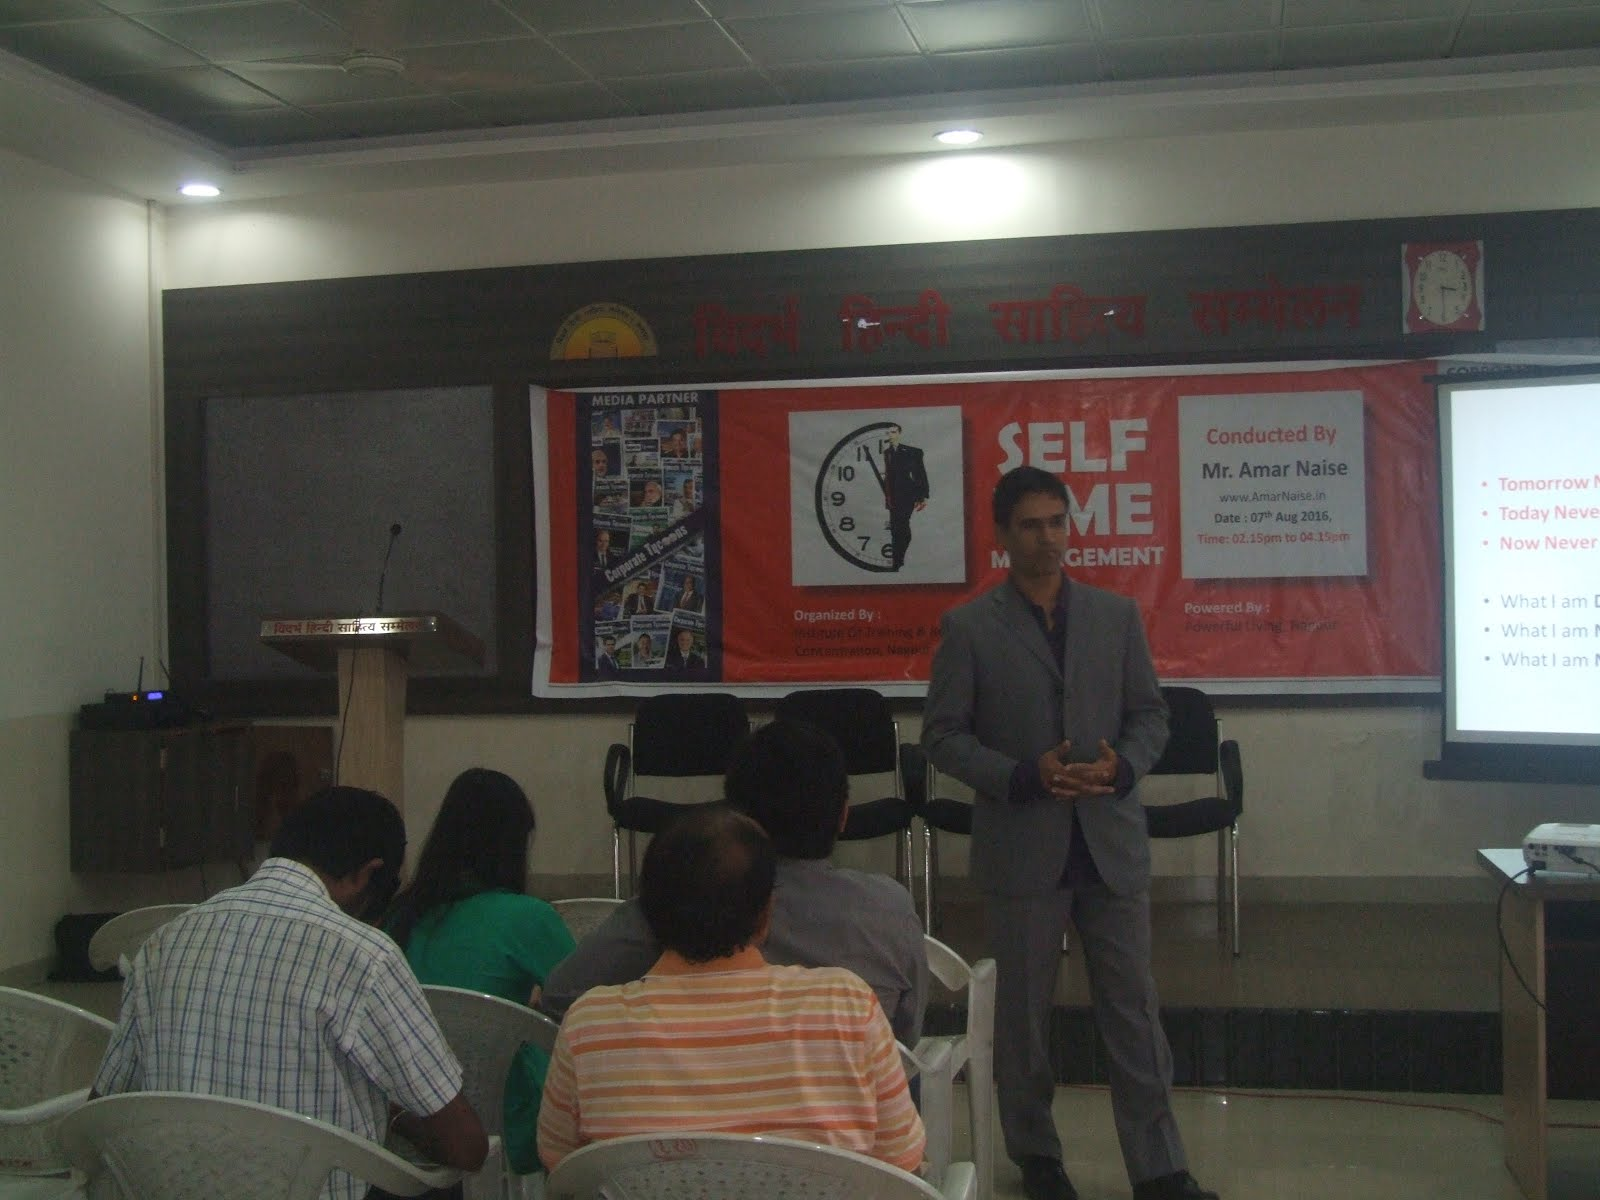 Seminar on Self Time Management